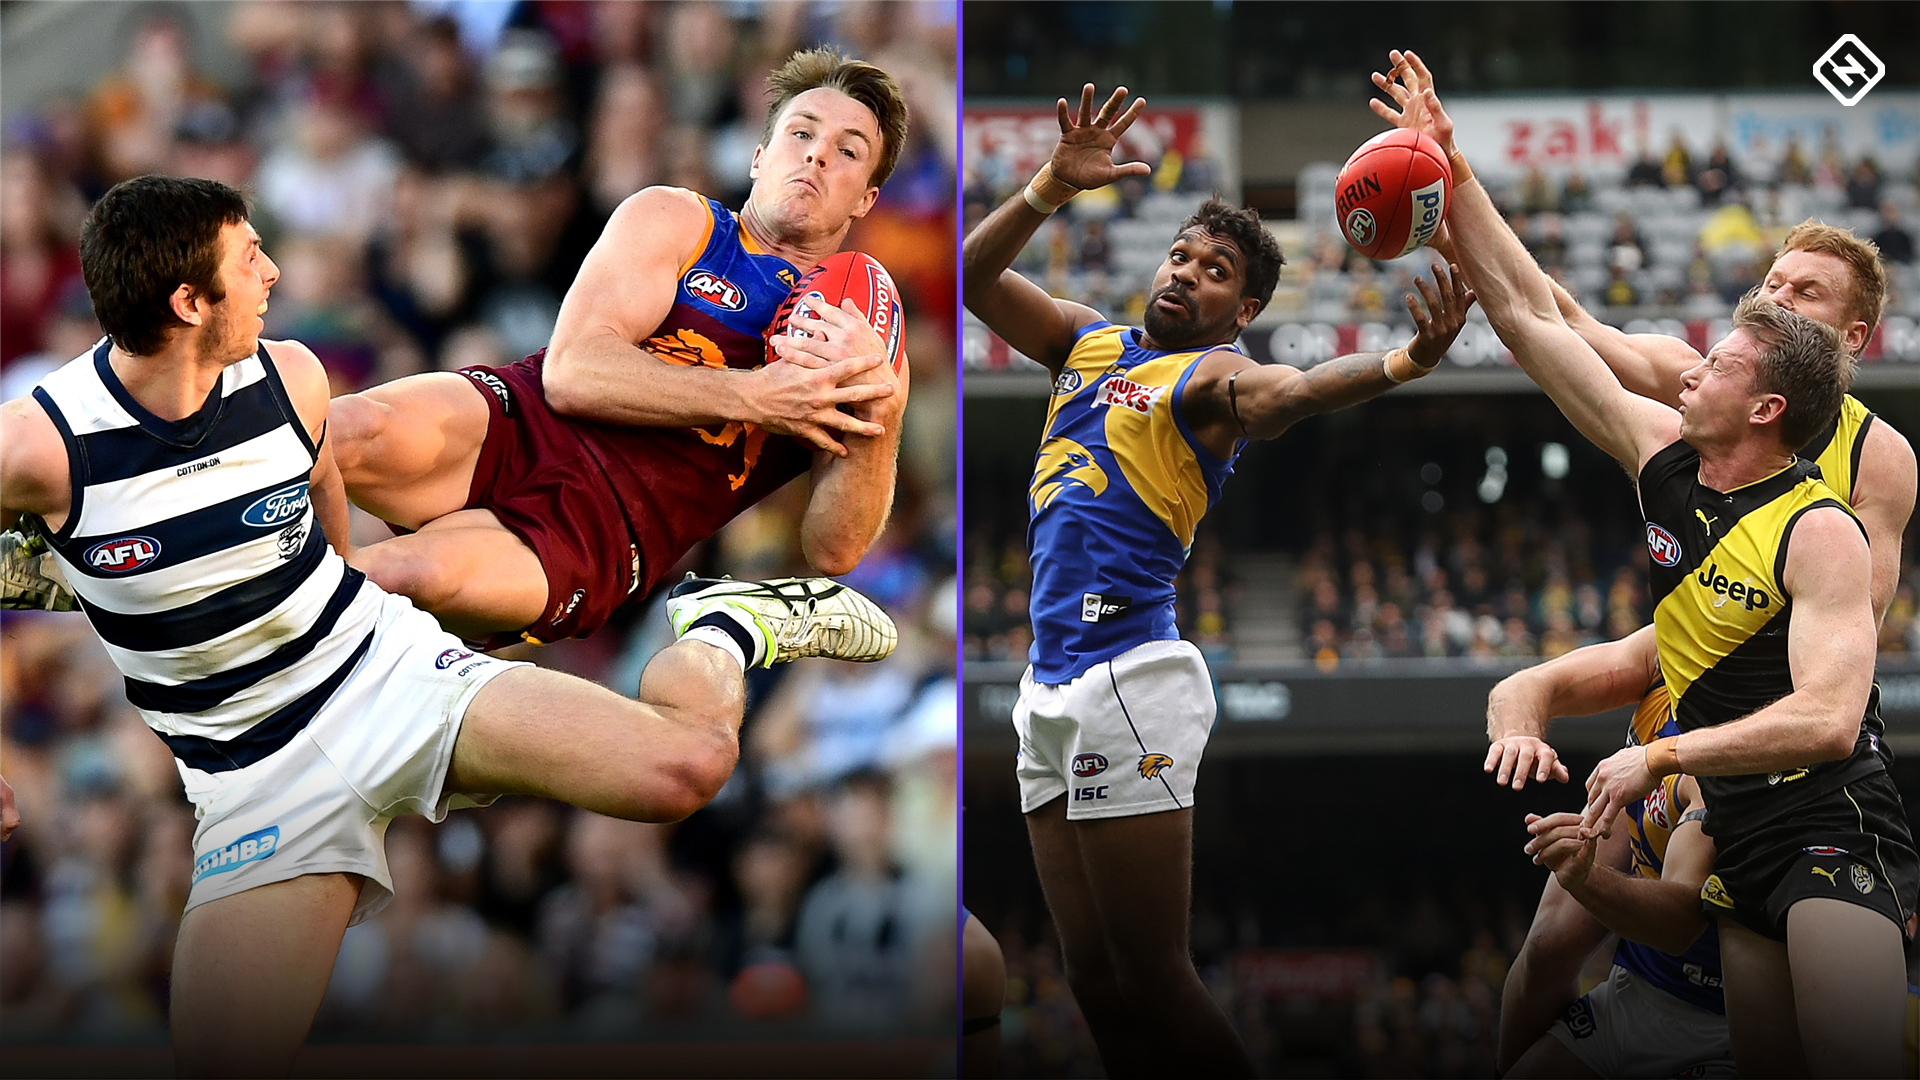 AFL 2019: Weighing up the premiership chances of the top four flag fancies